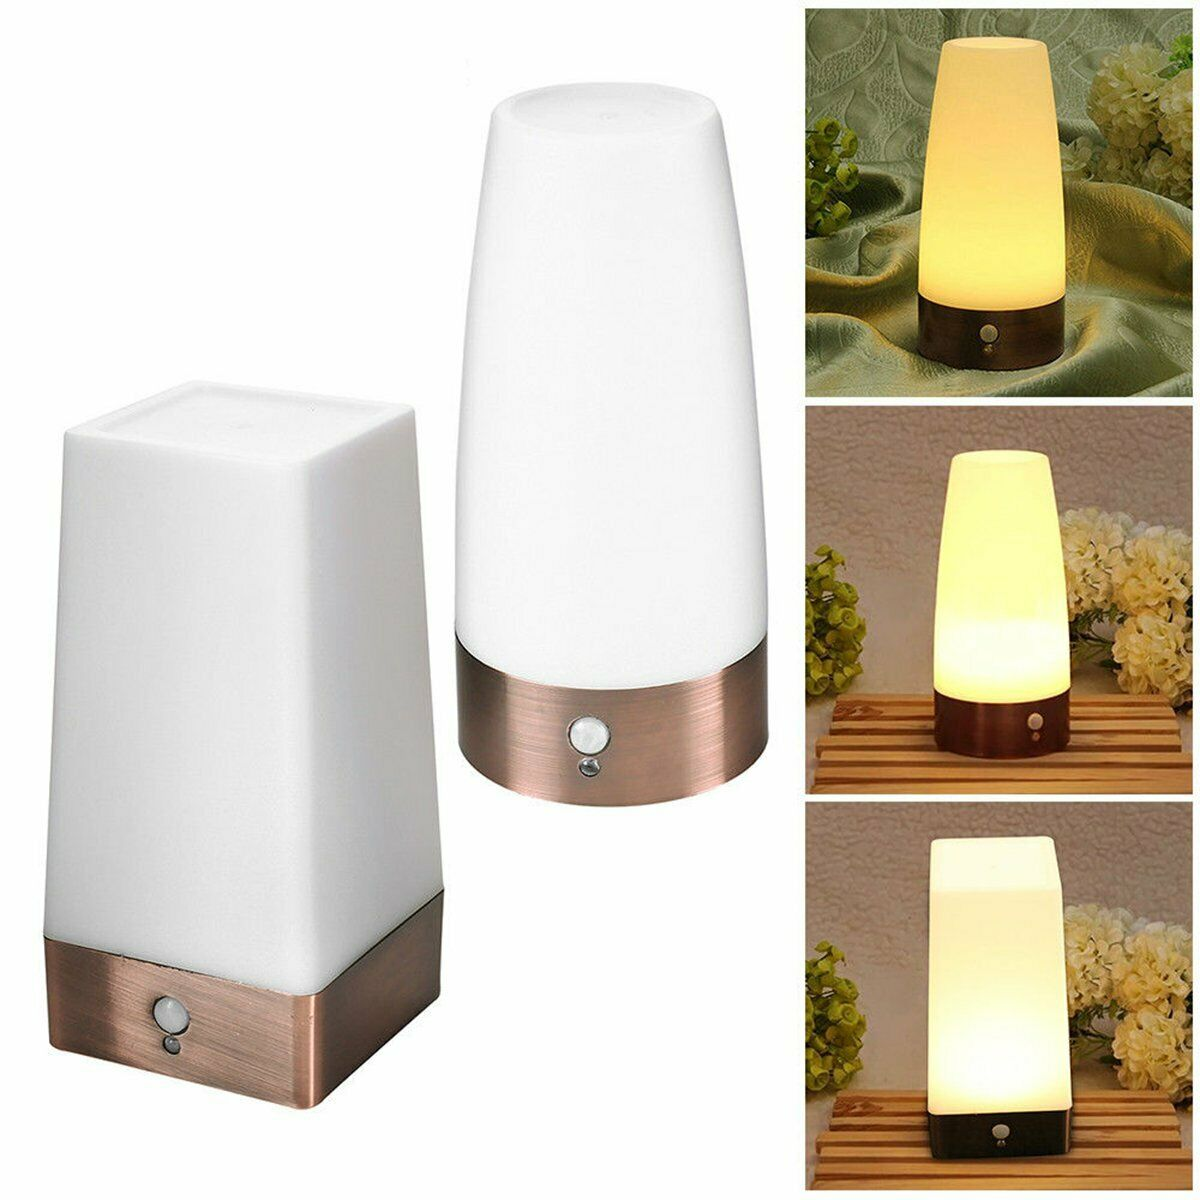 Smart Wireless PIR Motion Sensor LED Night Light Battery Powered Table Lamp Warm White Color Night LED Lighting Home Decor